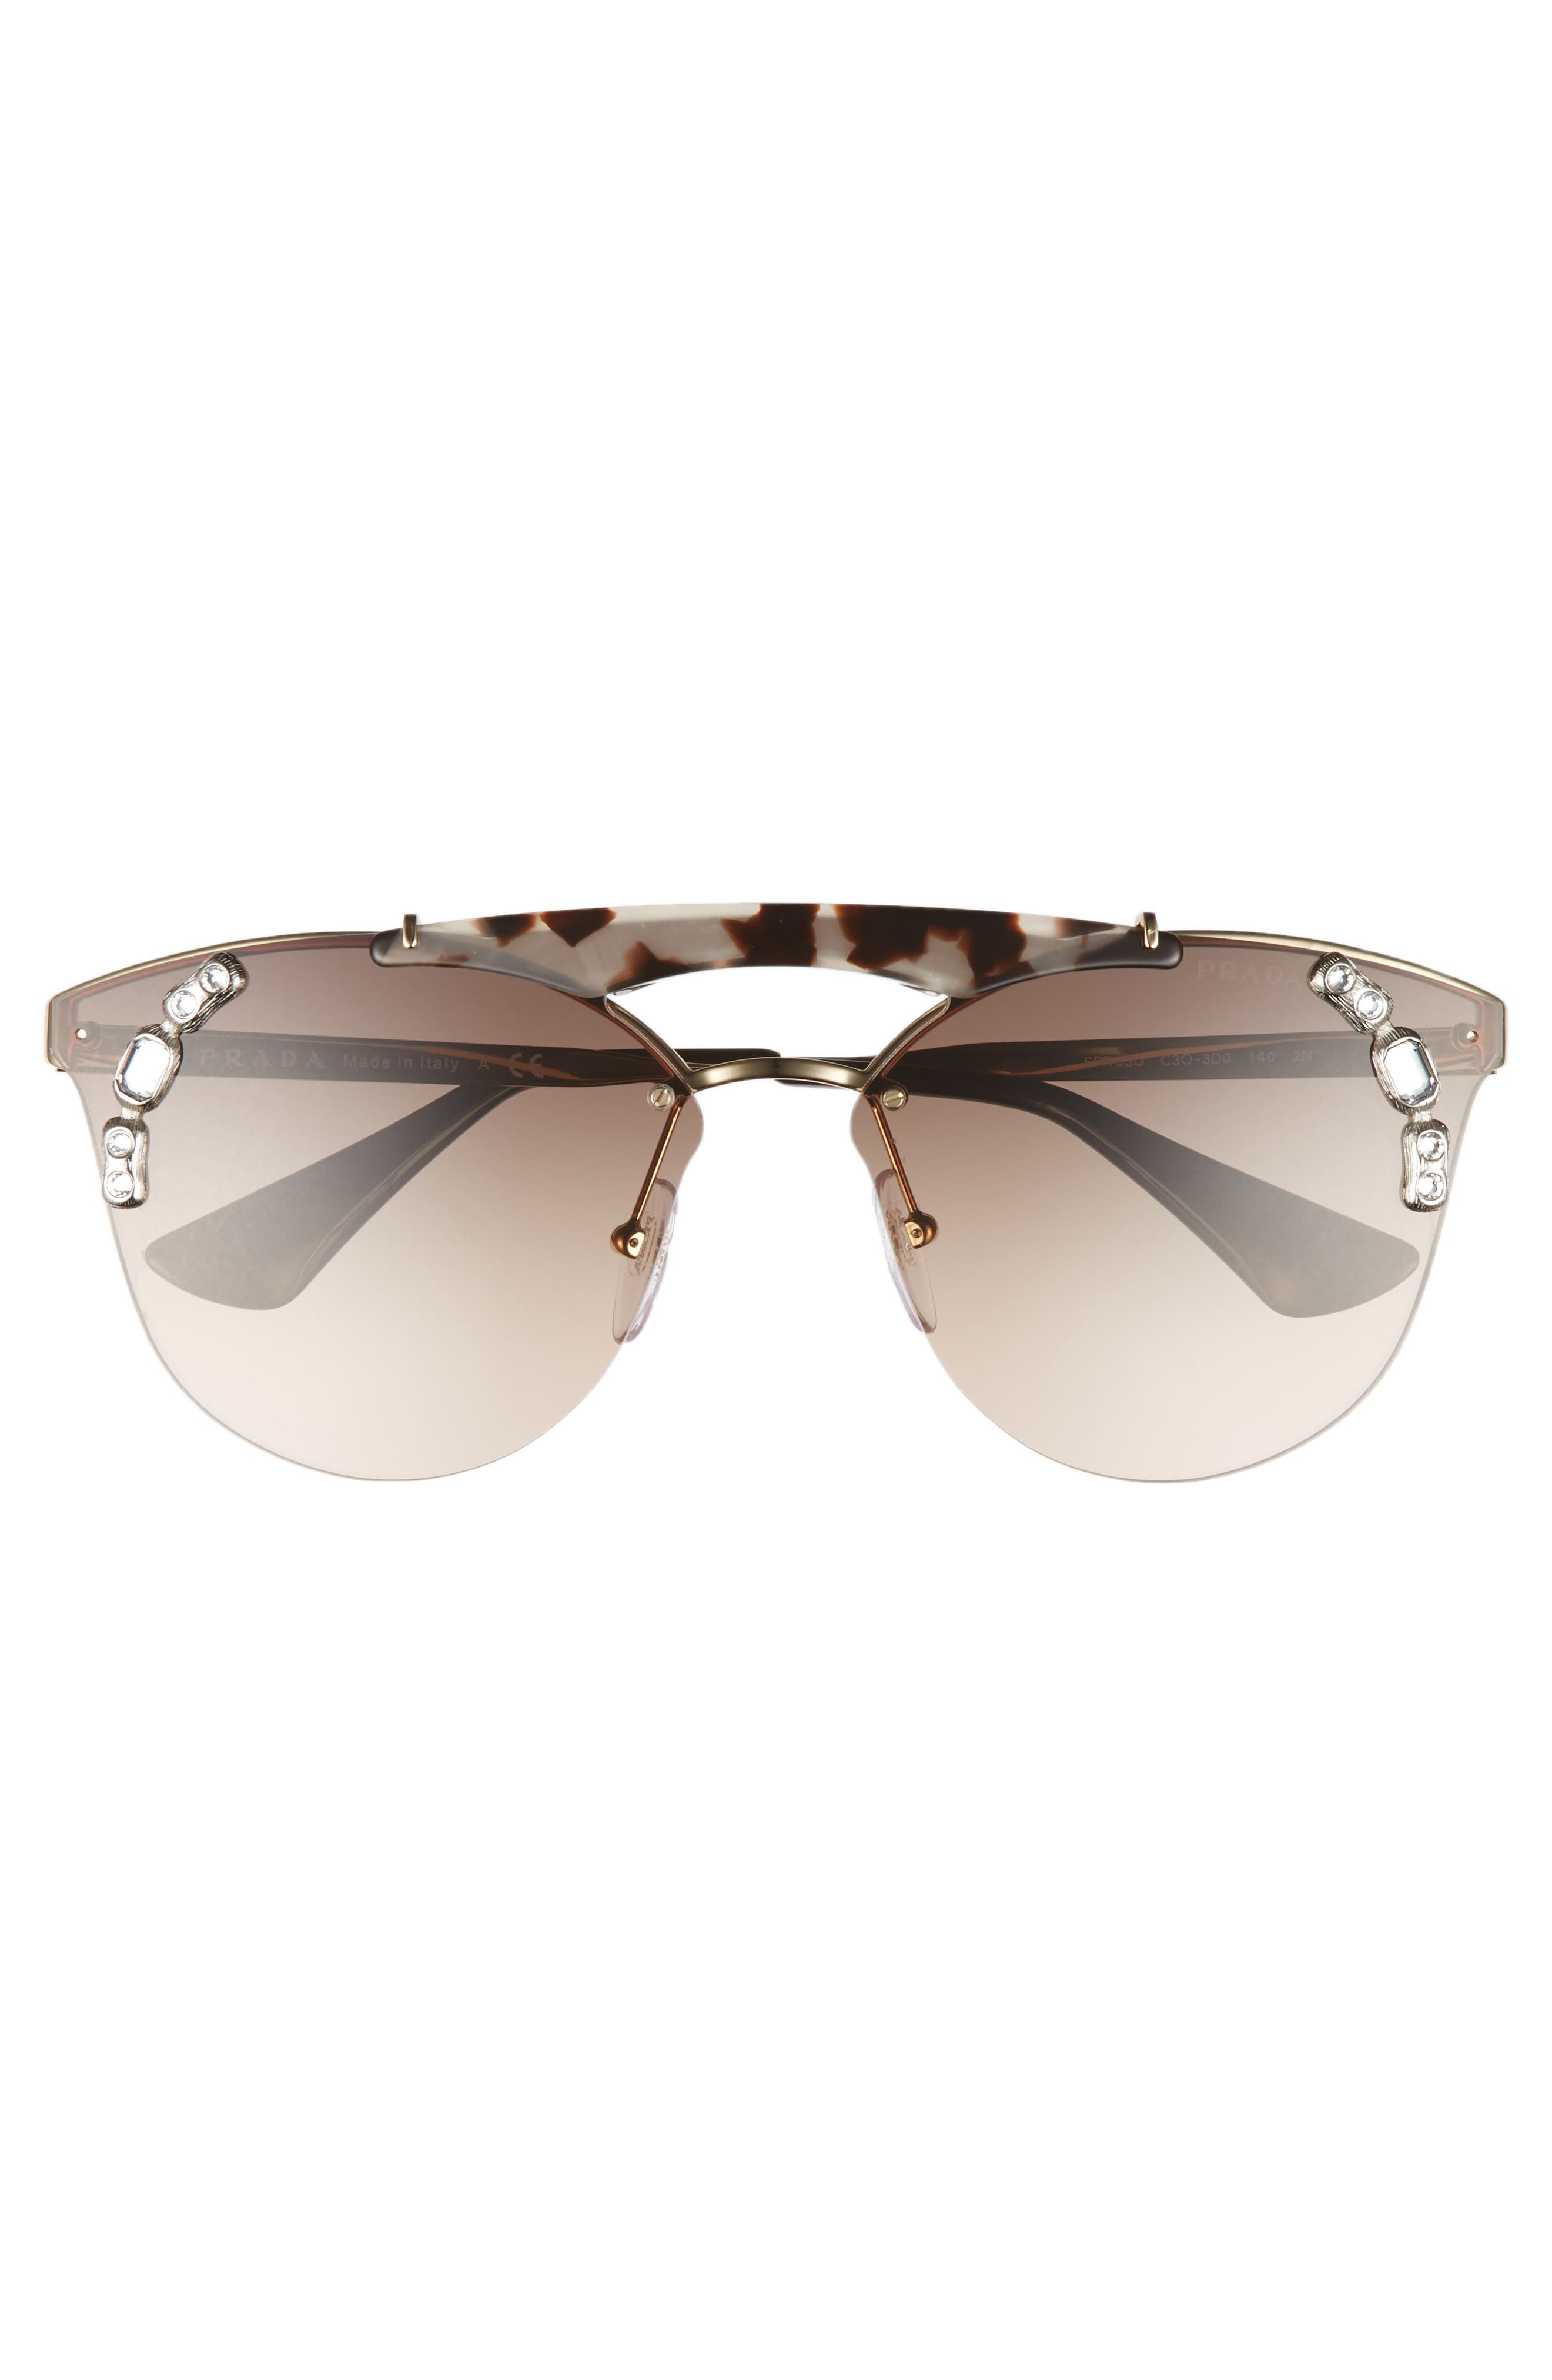 53mm Embellished Rimless Sunglasses,                             Alternate thumbnail 3, color,                             Gold/ Brown